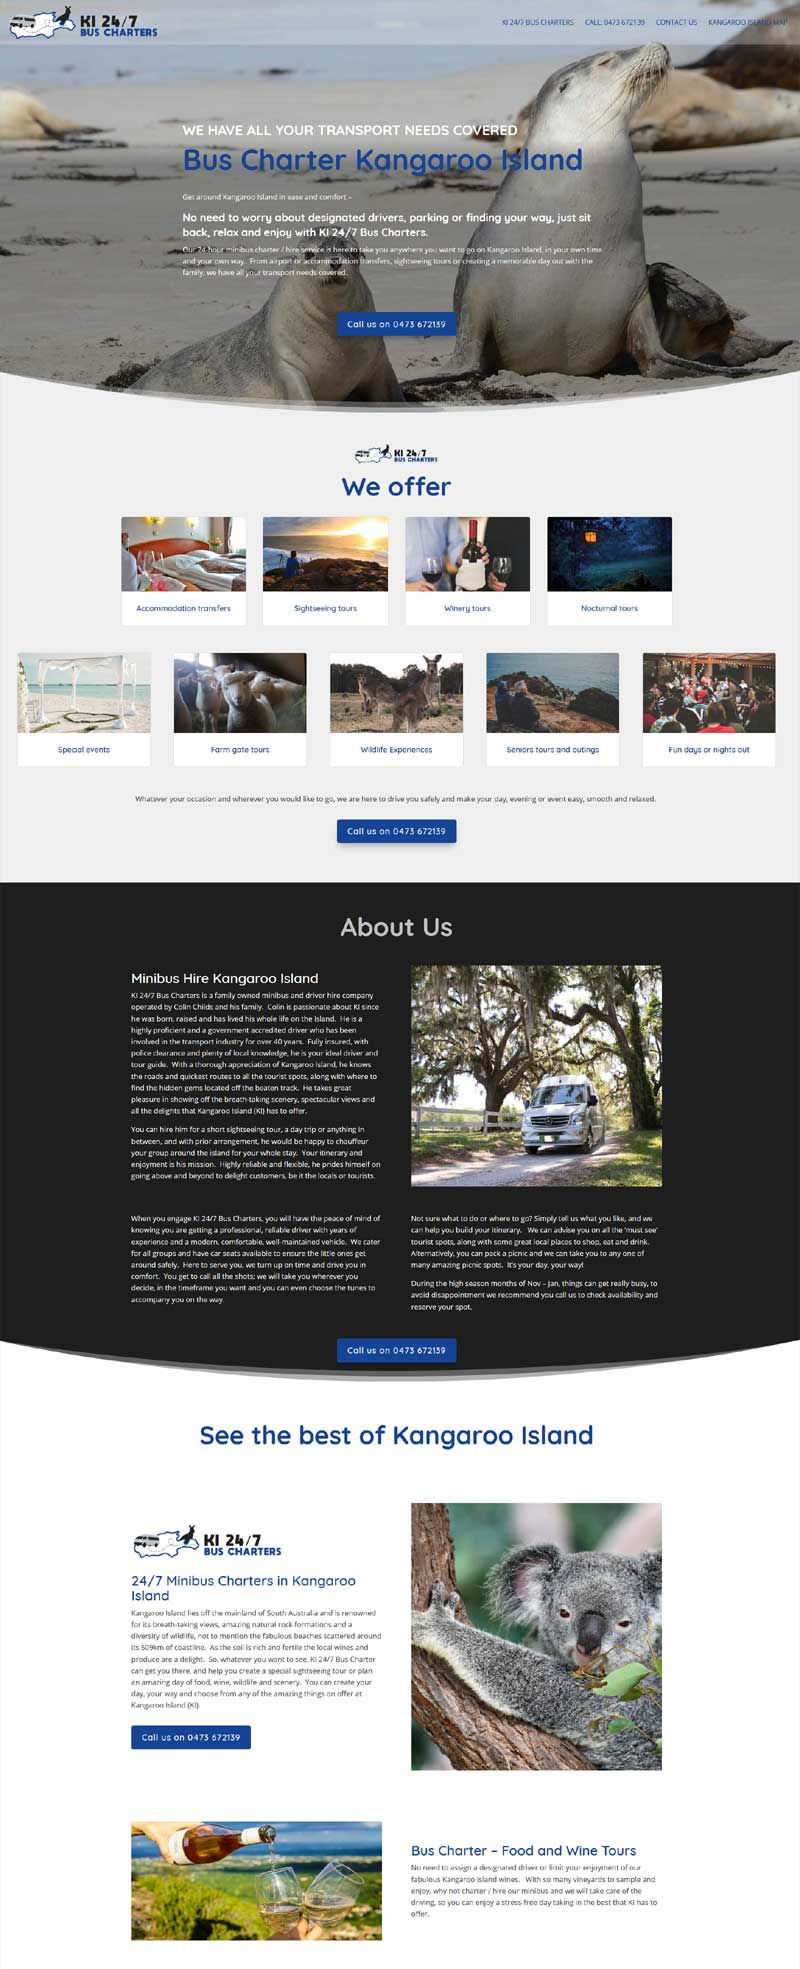 website design for kangaroo island bus charters